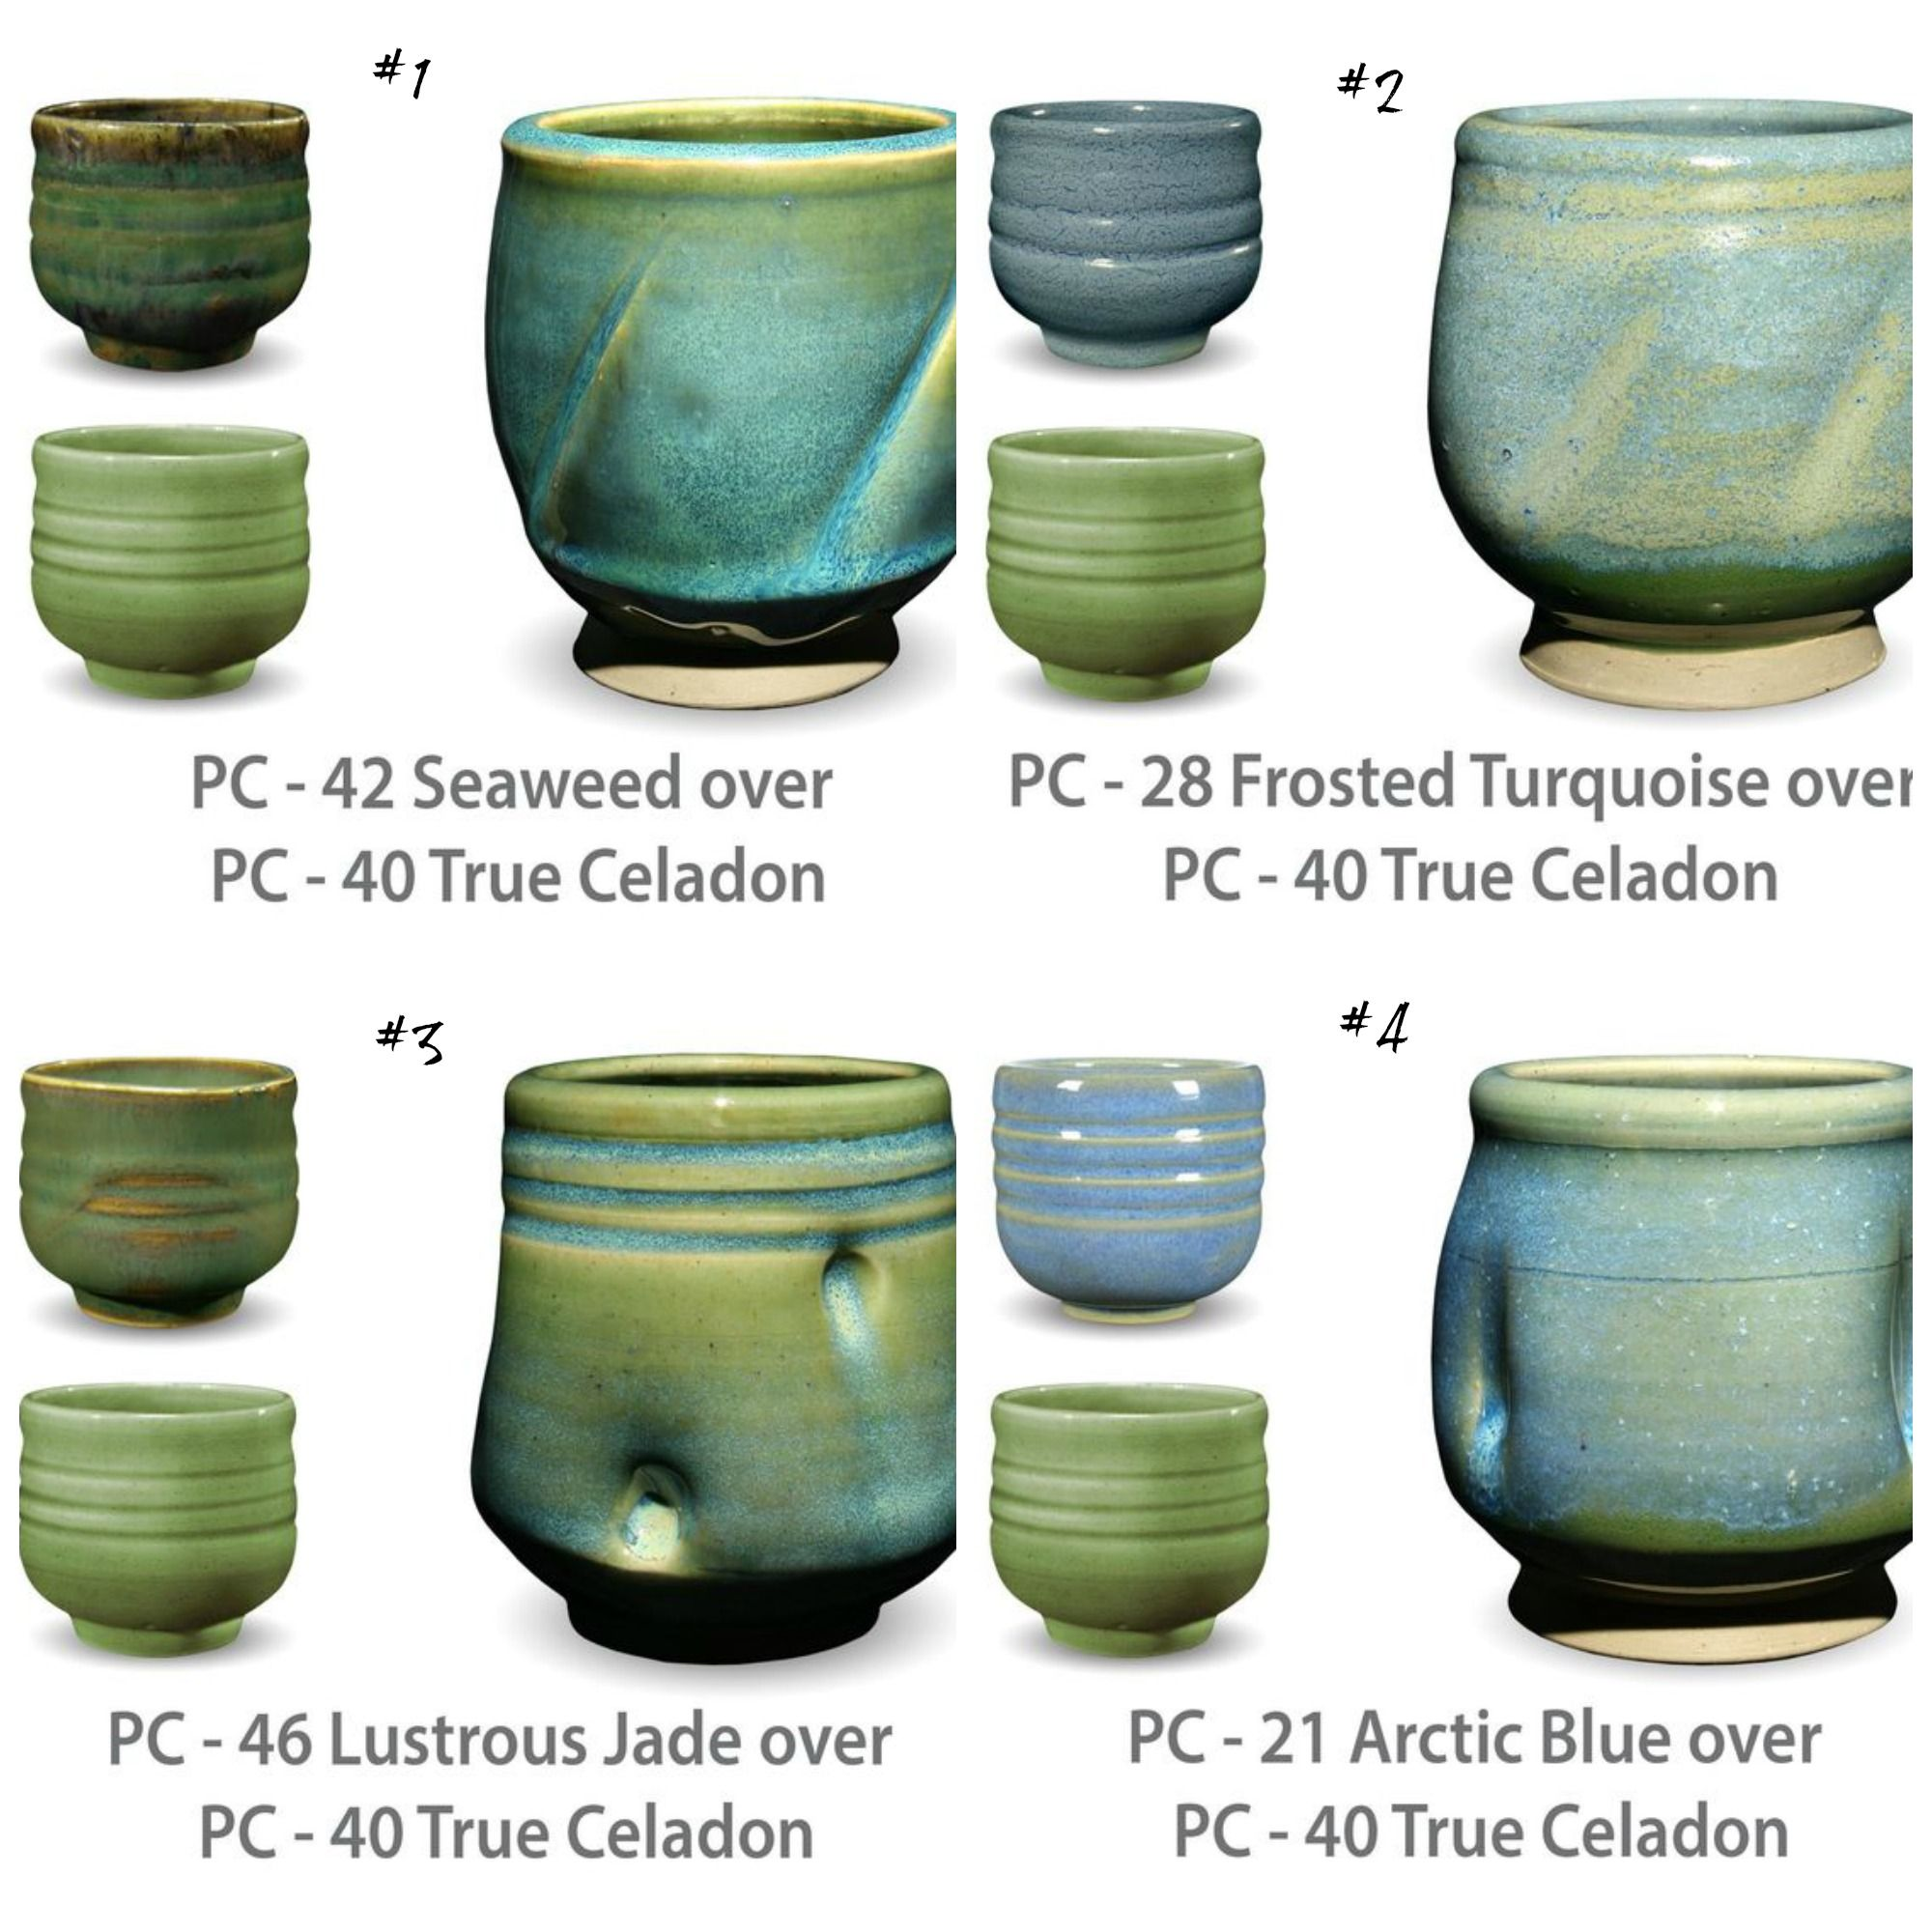 Here S Some Of The Glaze Combinations I M Wanting To Try On My Bottles And Vases Especially The Simple Glazes For Pottery Ceramic Glaze Recipes Glaze Ceramics